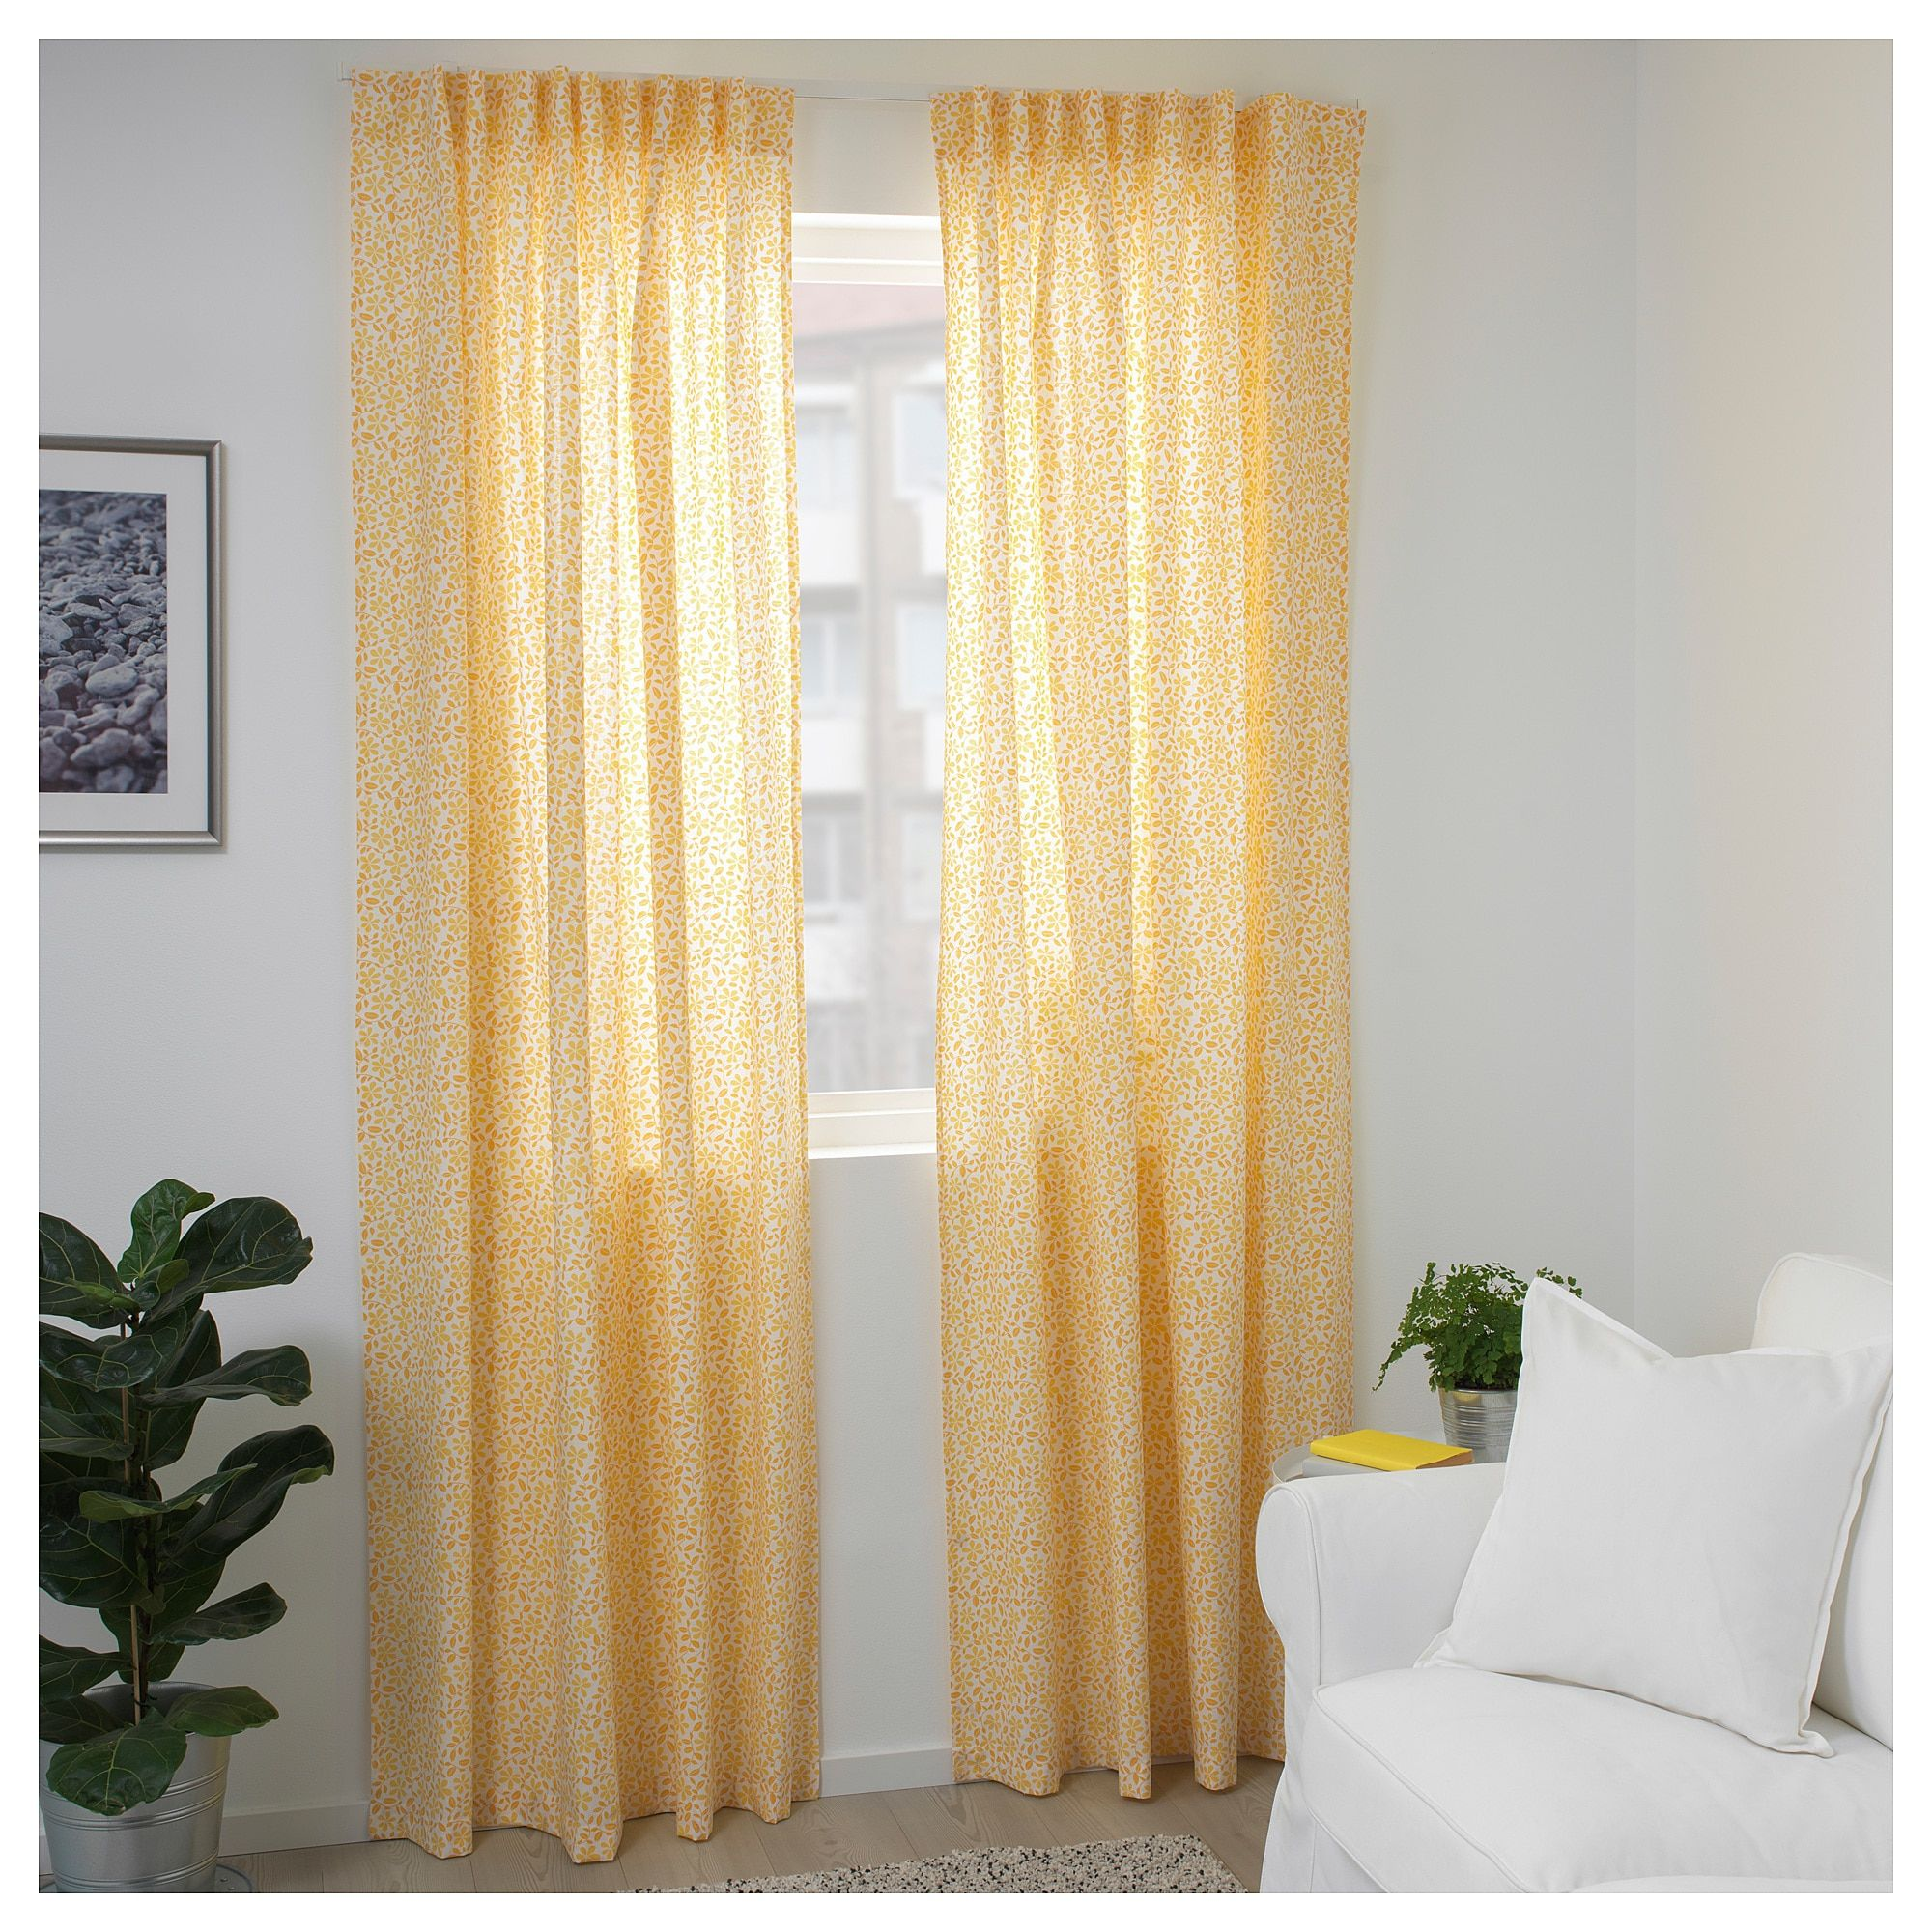 Ikea Dorthea White Yellow Curtains 1 Pair Curtains Ikea Curtains Without Sewing